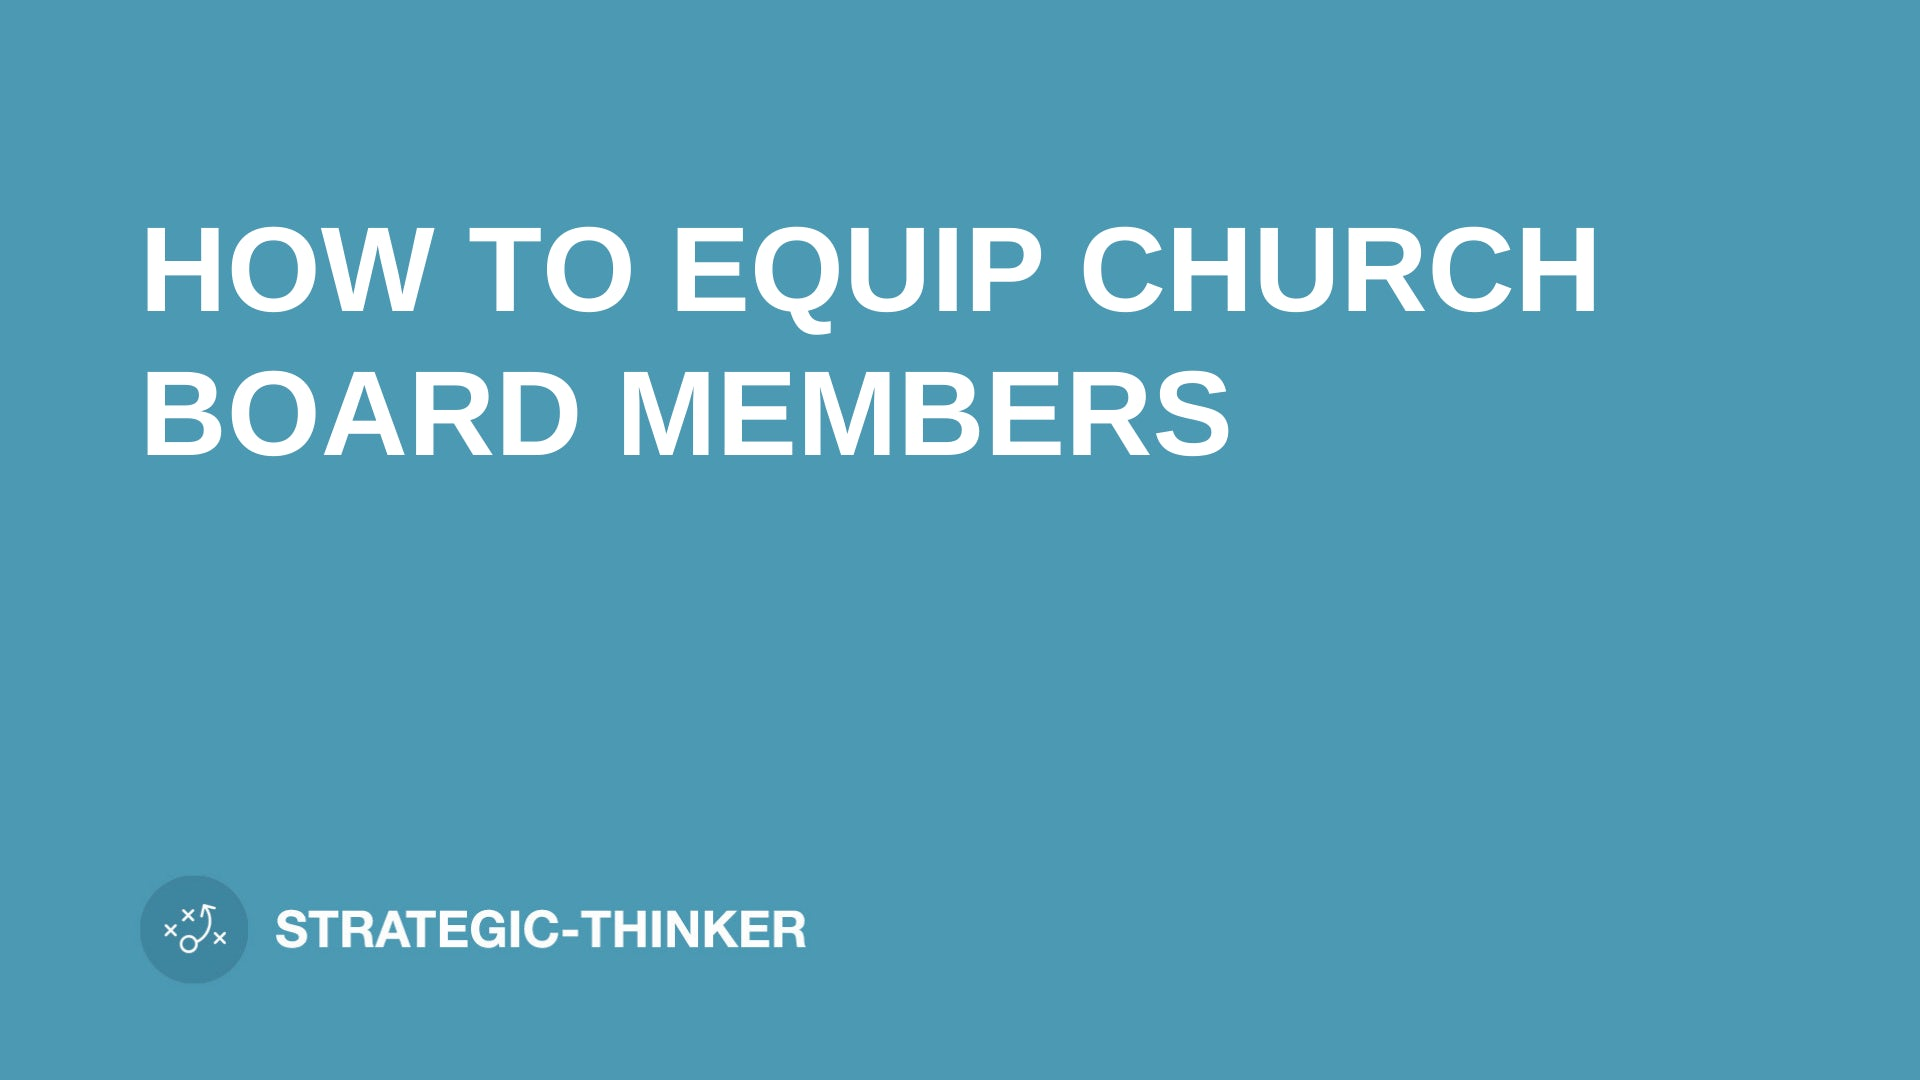 "text ""HOW TO EQUIP CHURCH BOARD MEMBERS"" on blue background leaders.church"